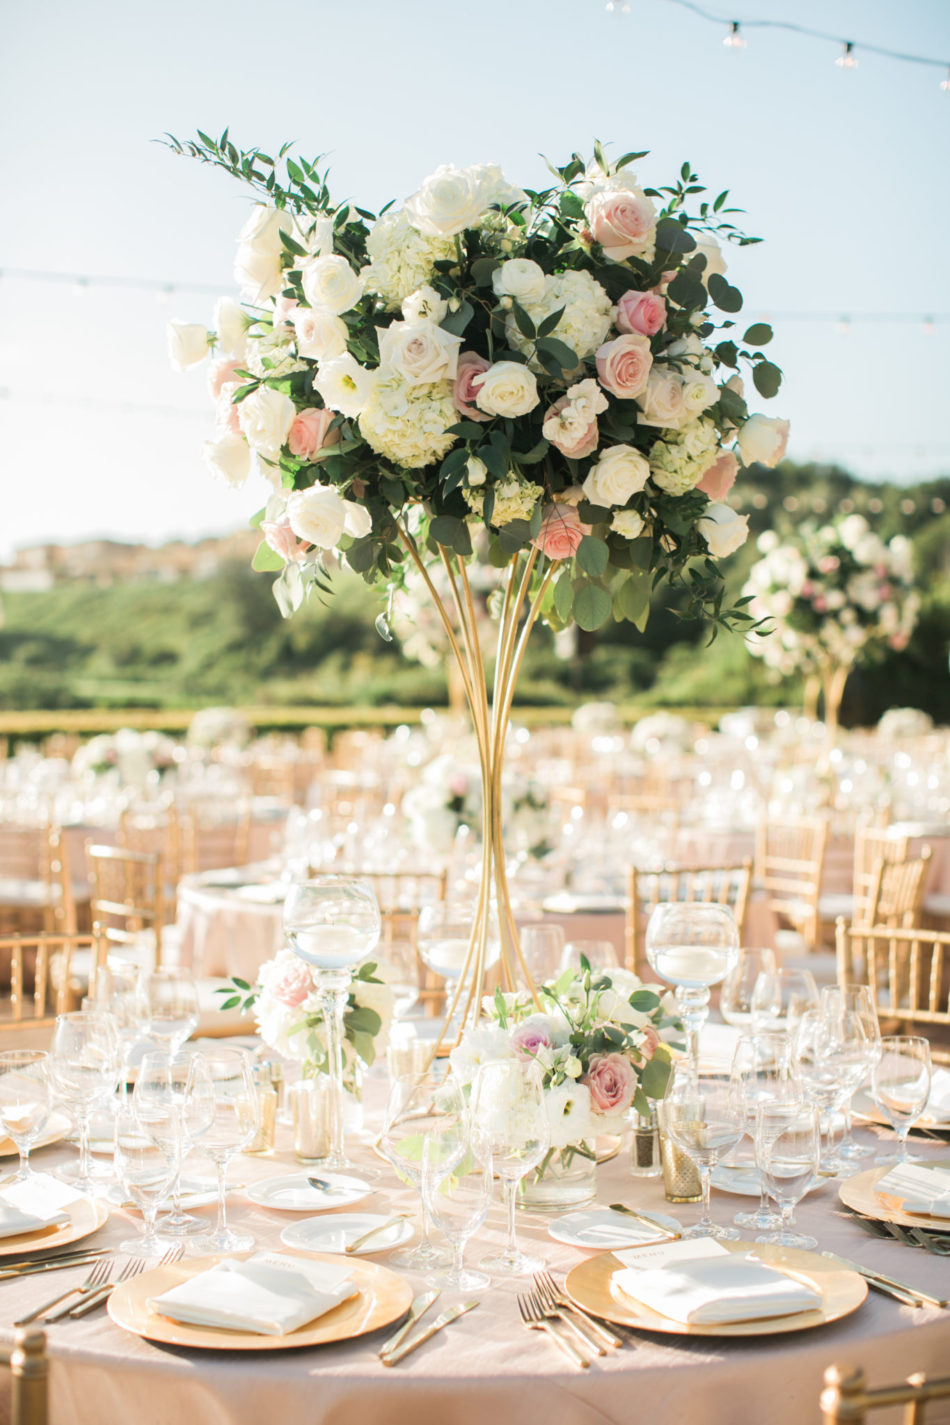 blush reception decor, blush centerpiece, elevated florals, floral design, florist, wedding florist, wedding flowers, orange county weddings, orange county wedding florist, orange county florist, orange county floral design, flowers by cina